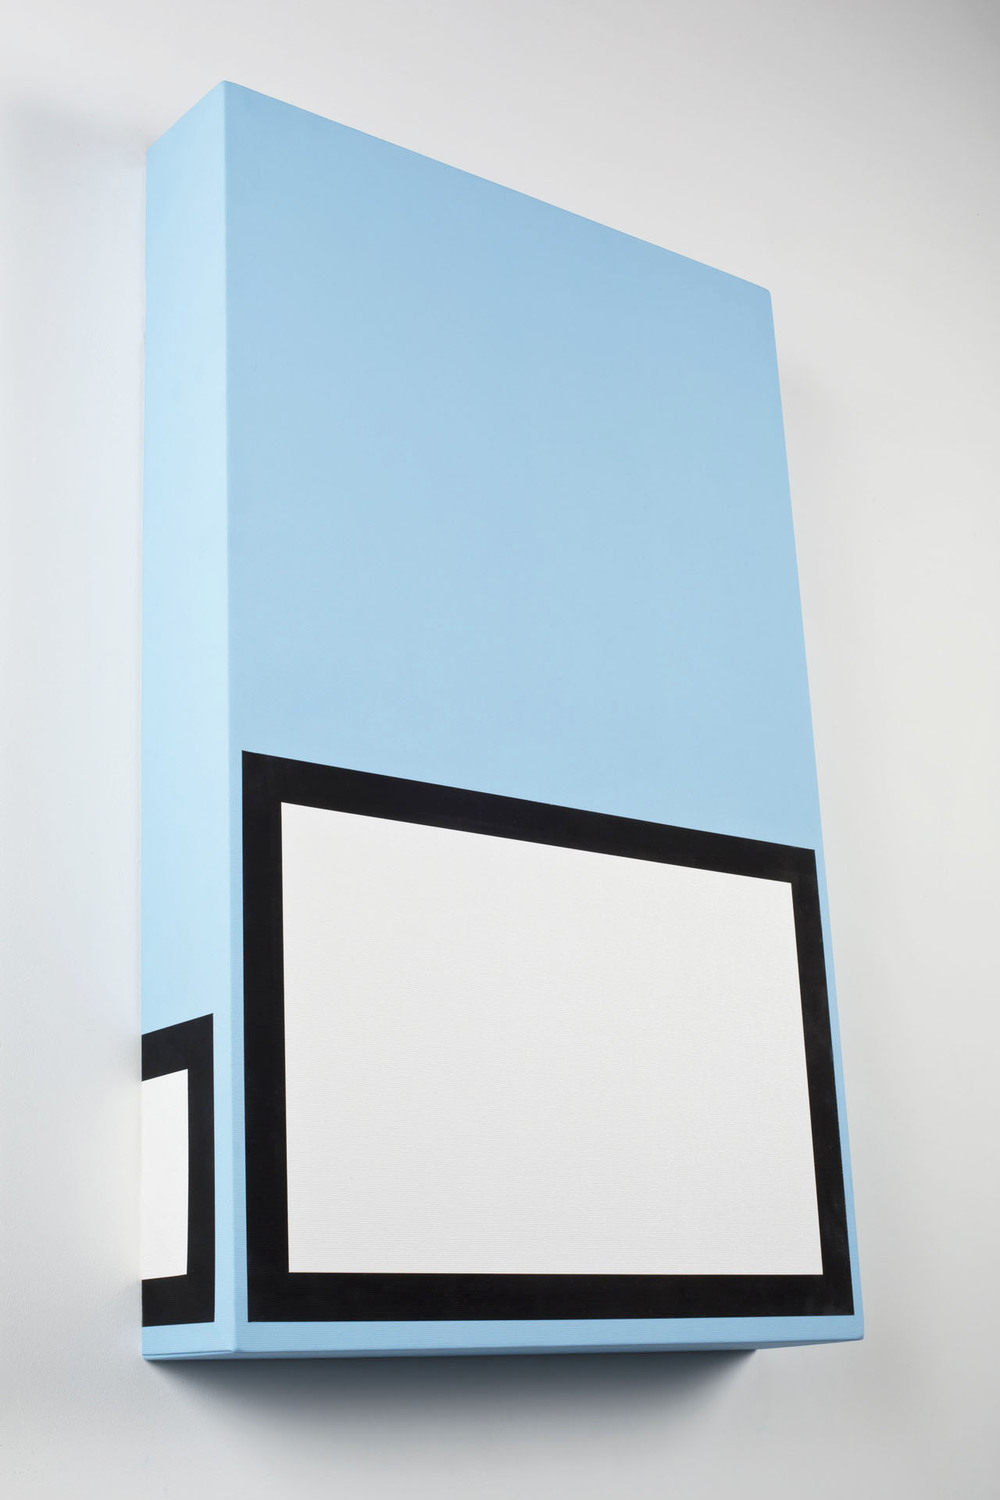 Luke Newton, King Size Camel Blue Painting Thrills, 2013, 80x50x10 - cm - Courtesy the artist and Rabouan Moussion Paris